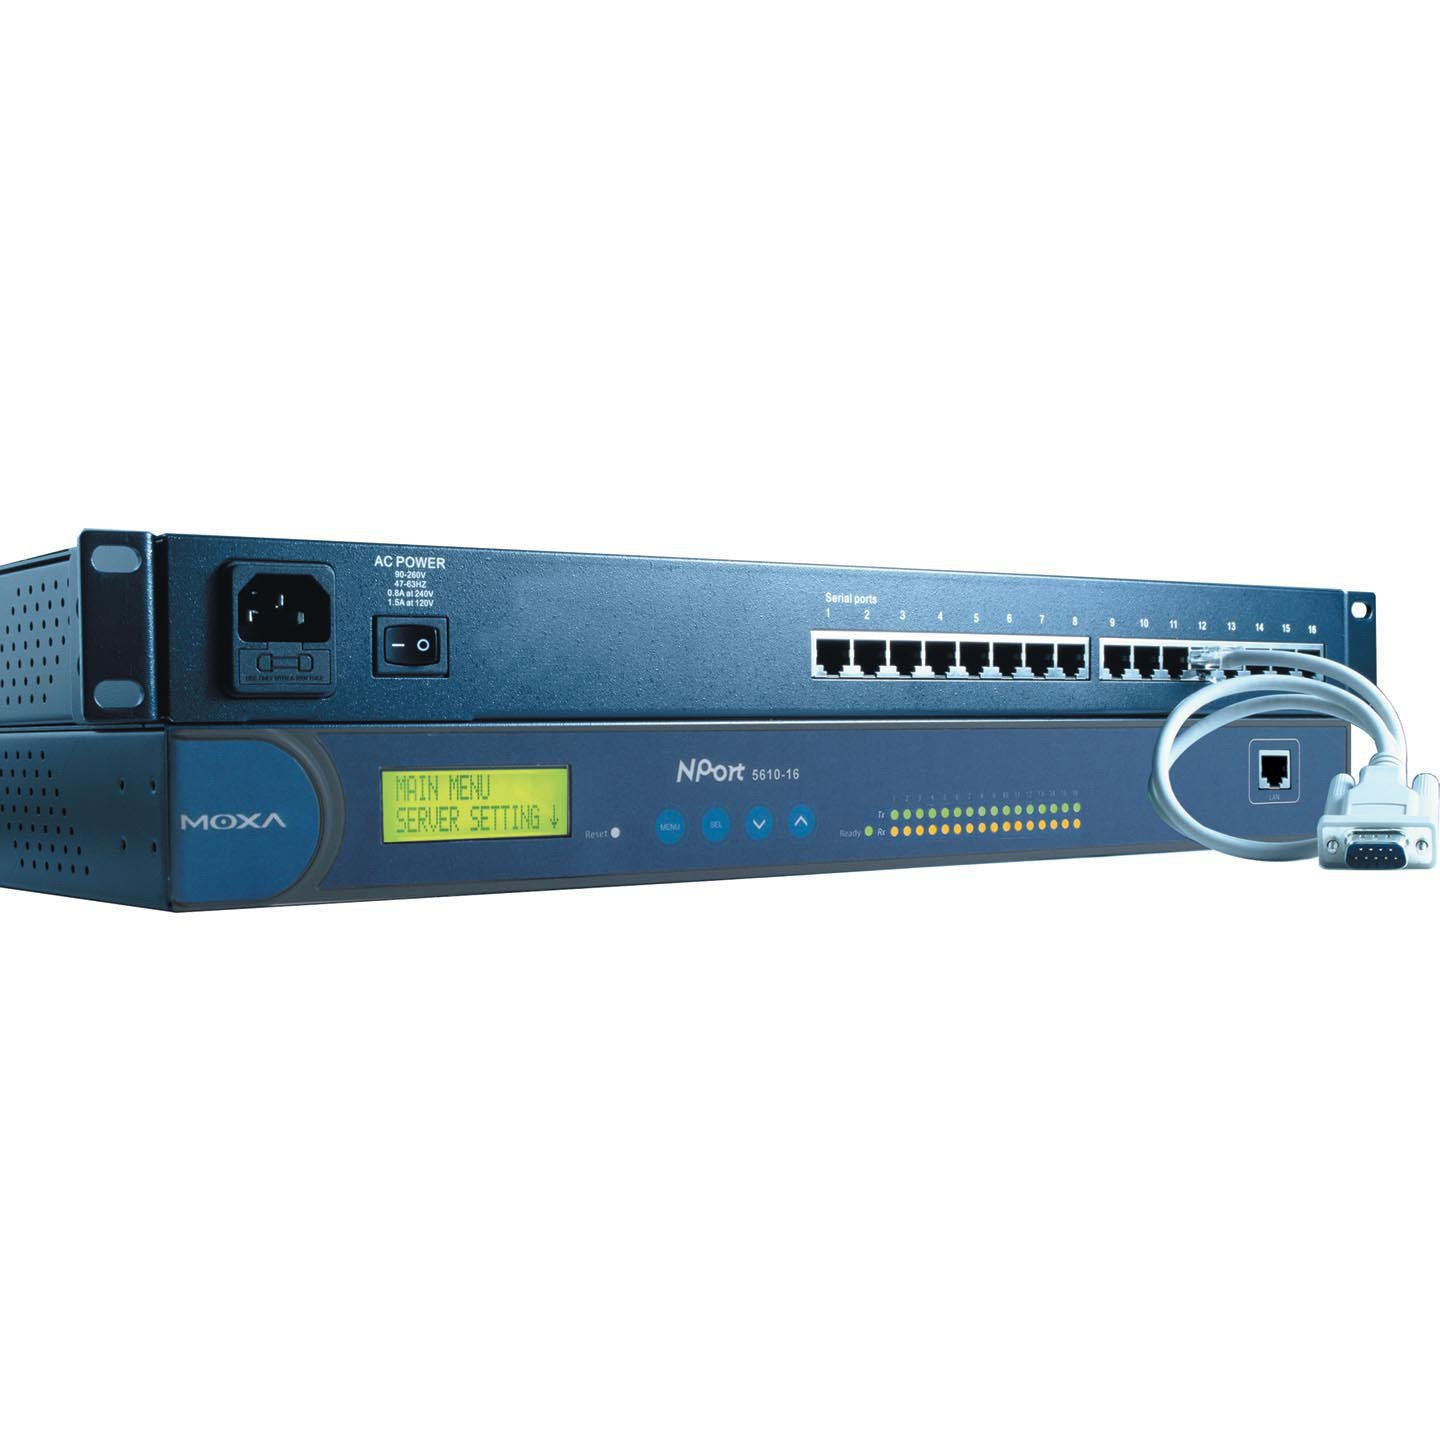 MOXA NPort 5610-16 16-Port RS-232 Rackmount Serial Device Server, 10/100M Ethernet, RS-232, RJ-45 8pin, 15KV ESD, 100-240 VAC Power Input. by Moxa